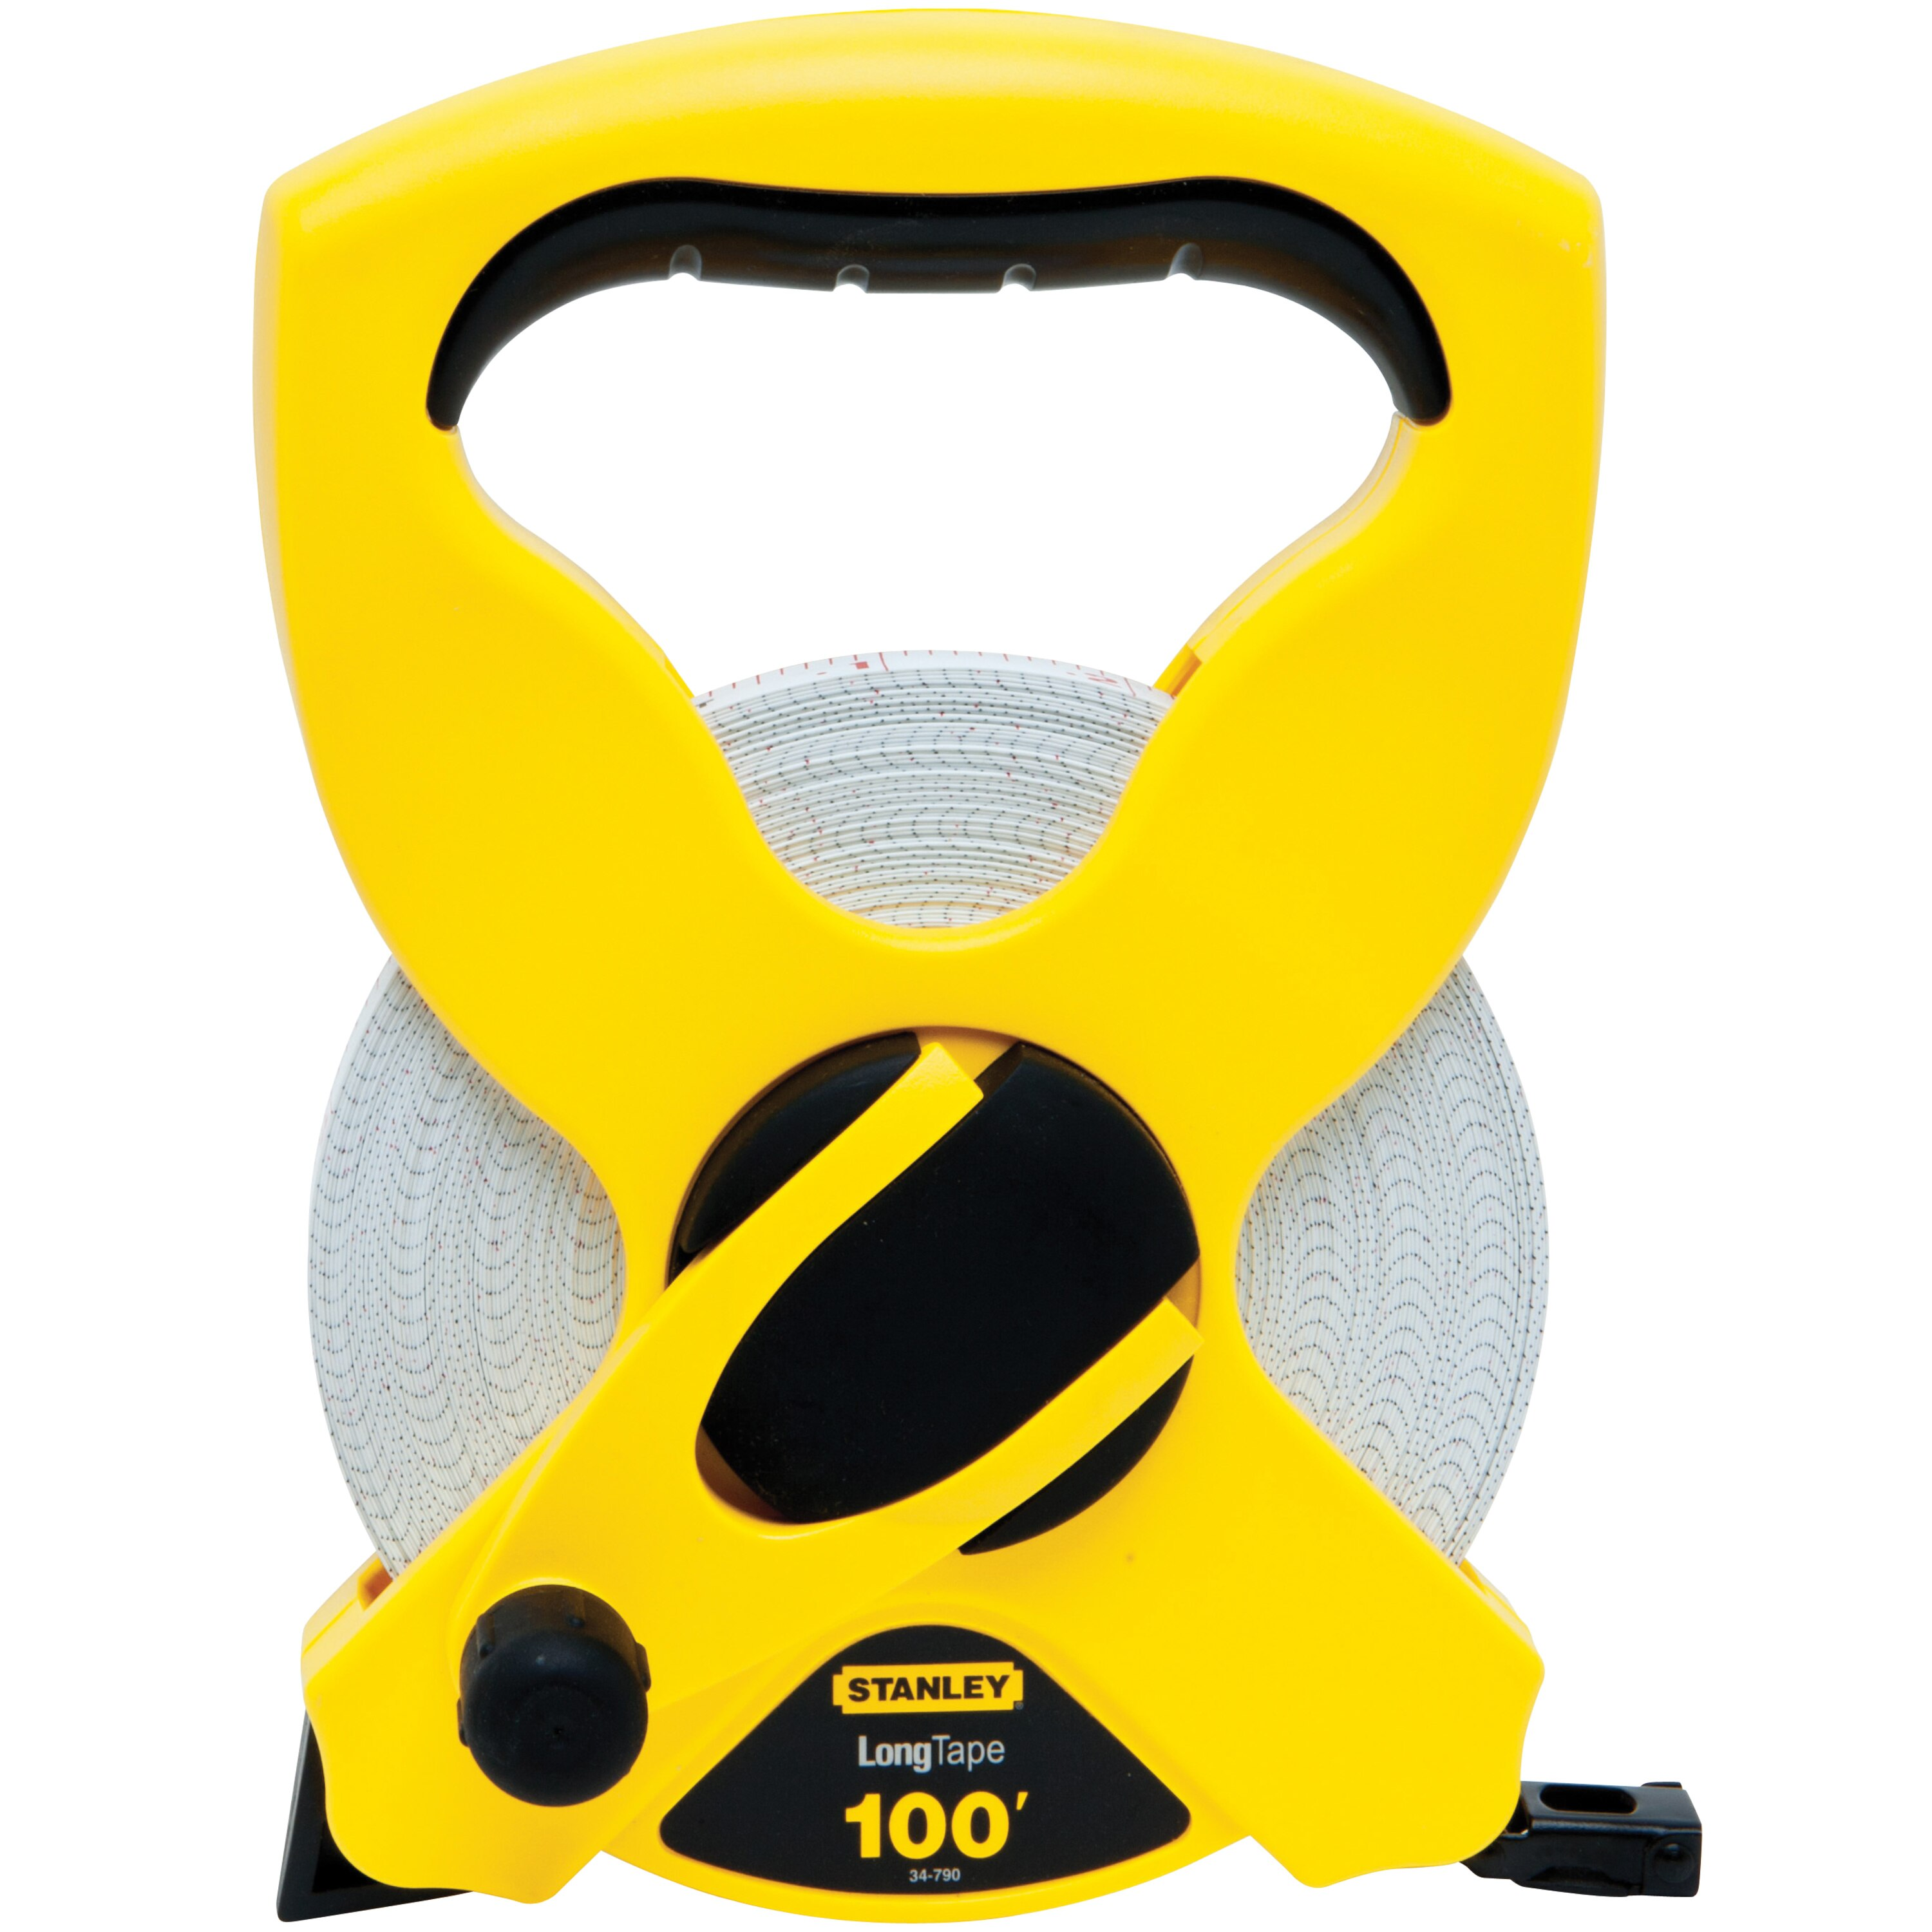 Stanley Tools - 100 ft Fiberglass Long Tape - 34-790